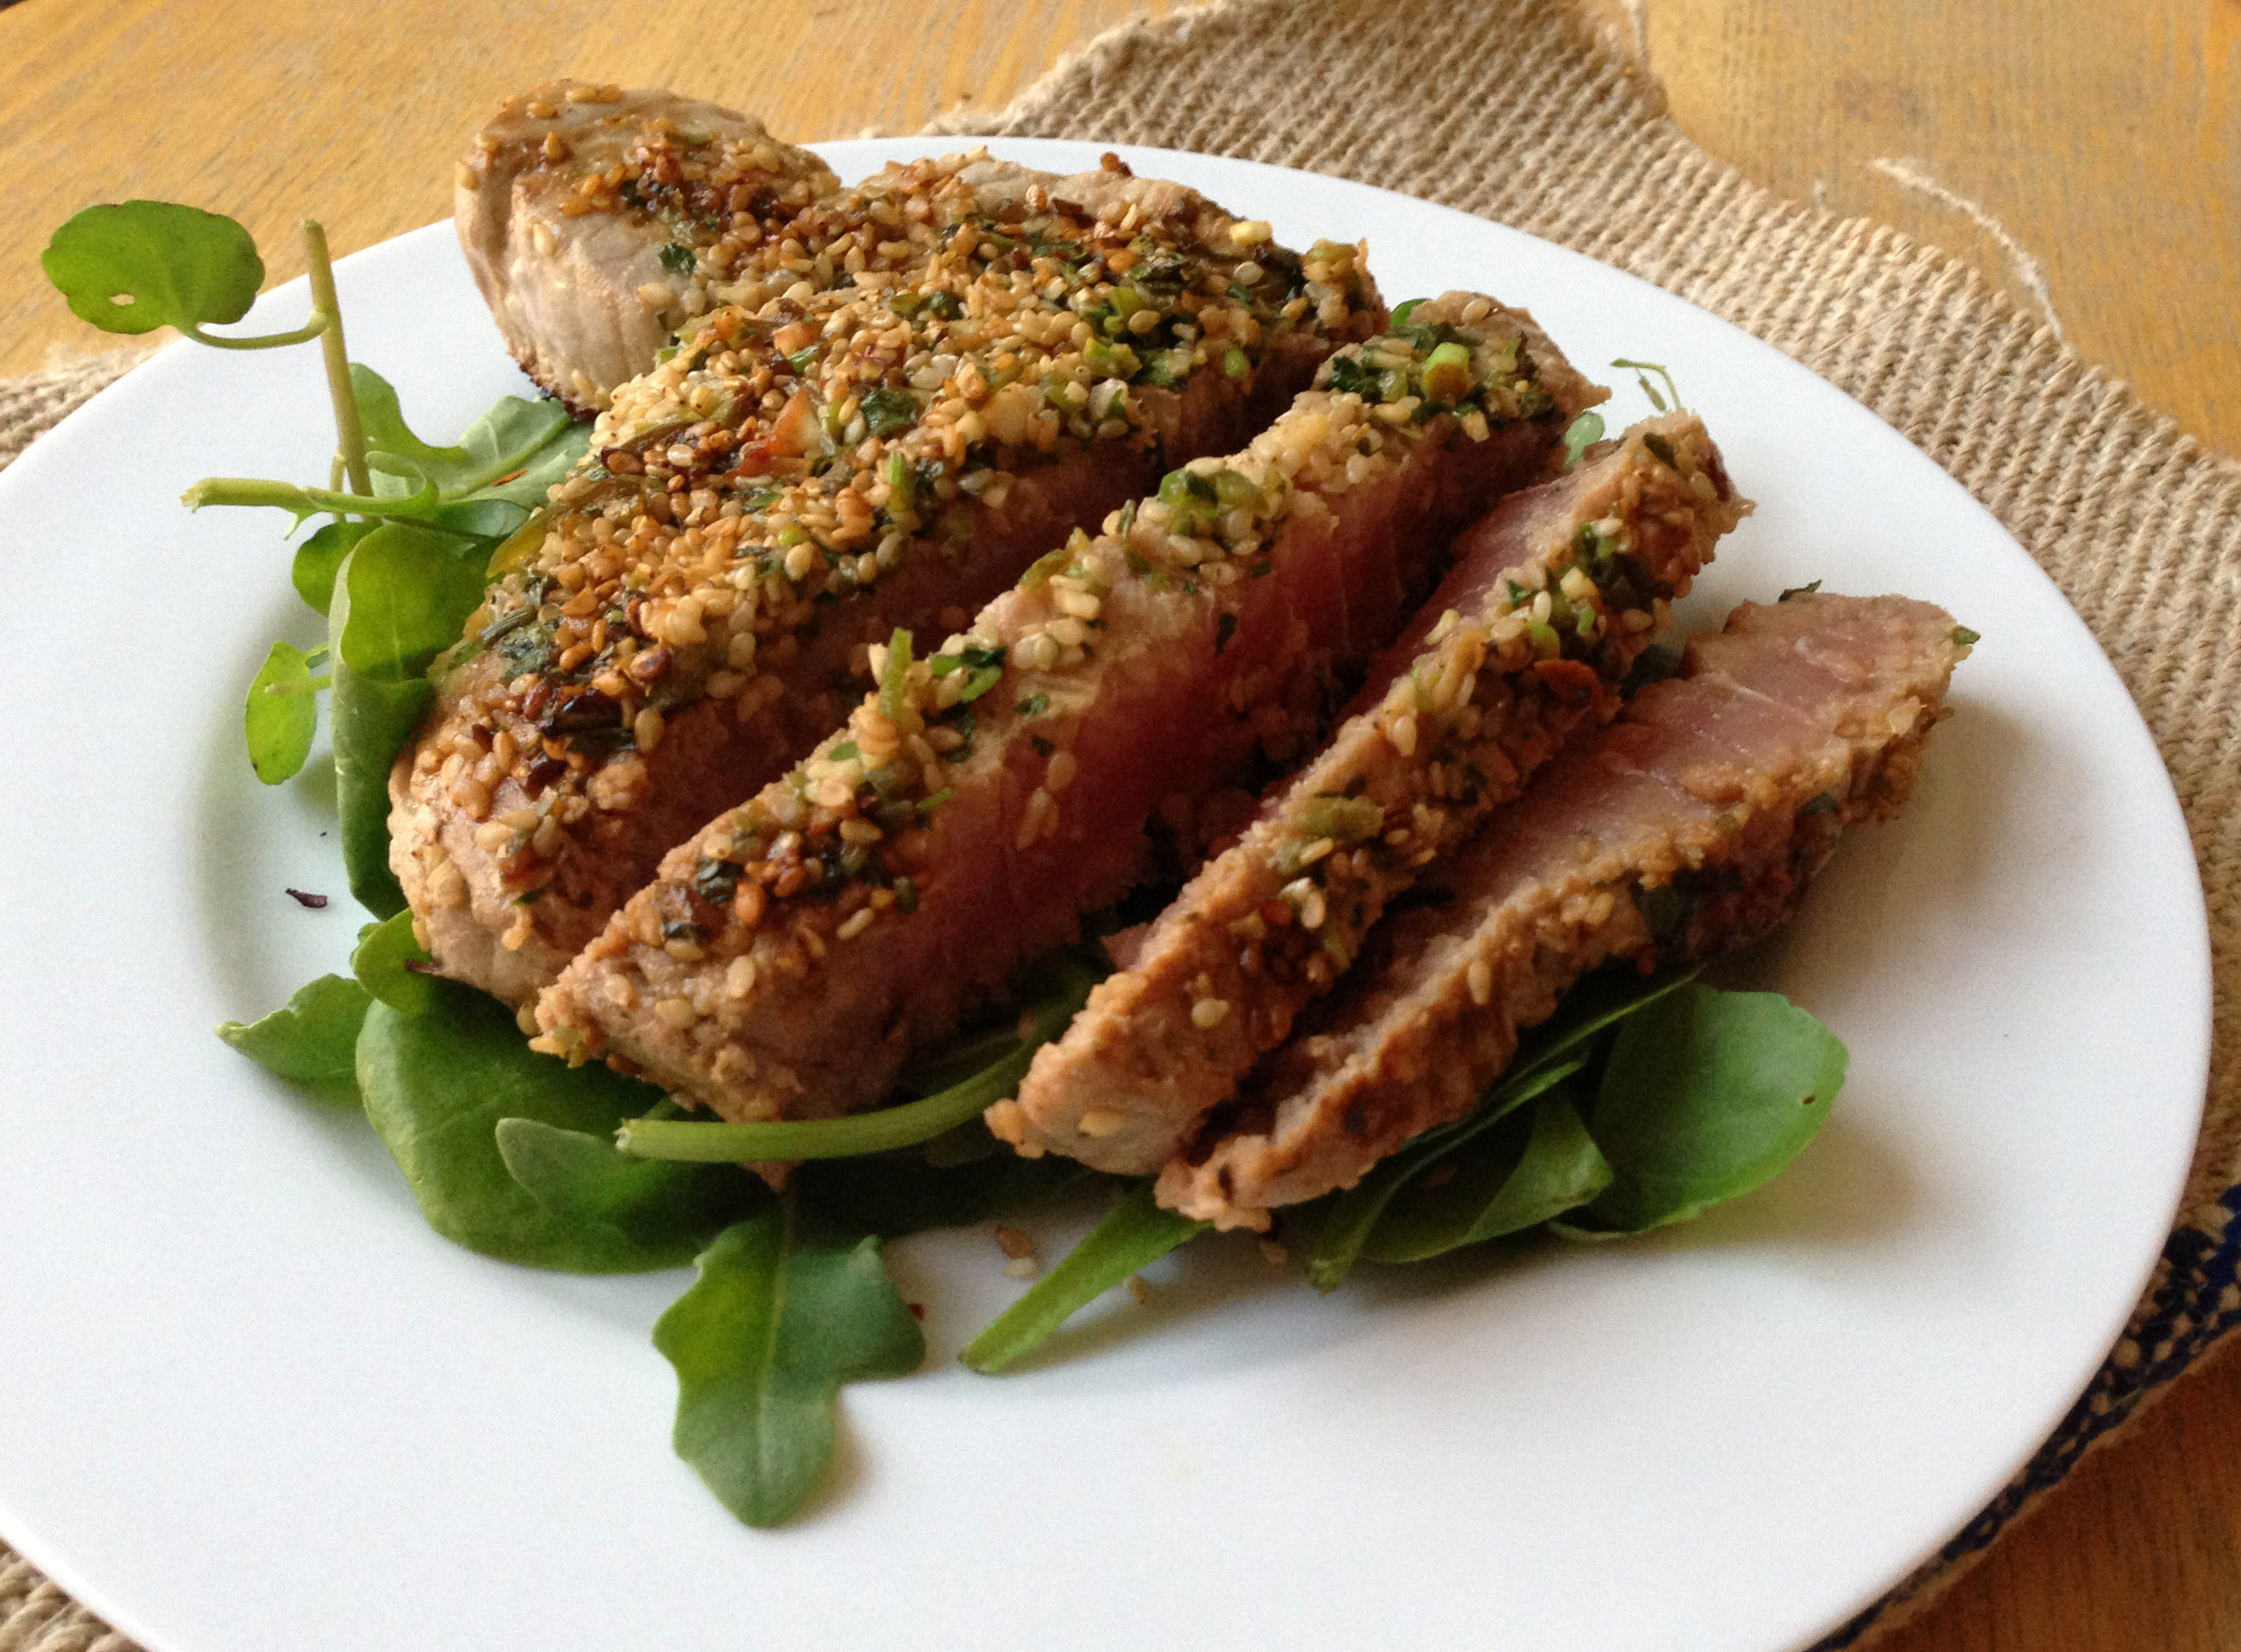 Marinated Tuna Steak with a Sesame Crust